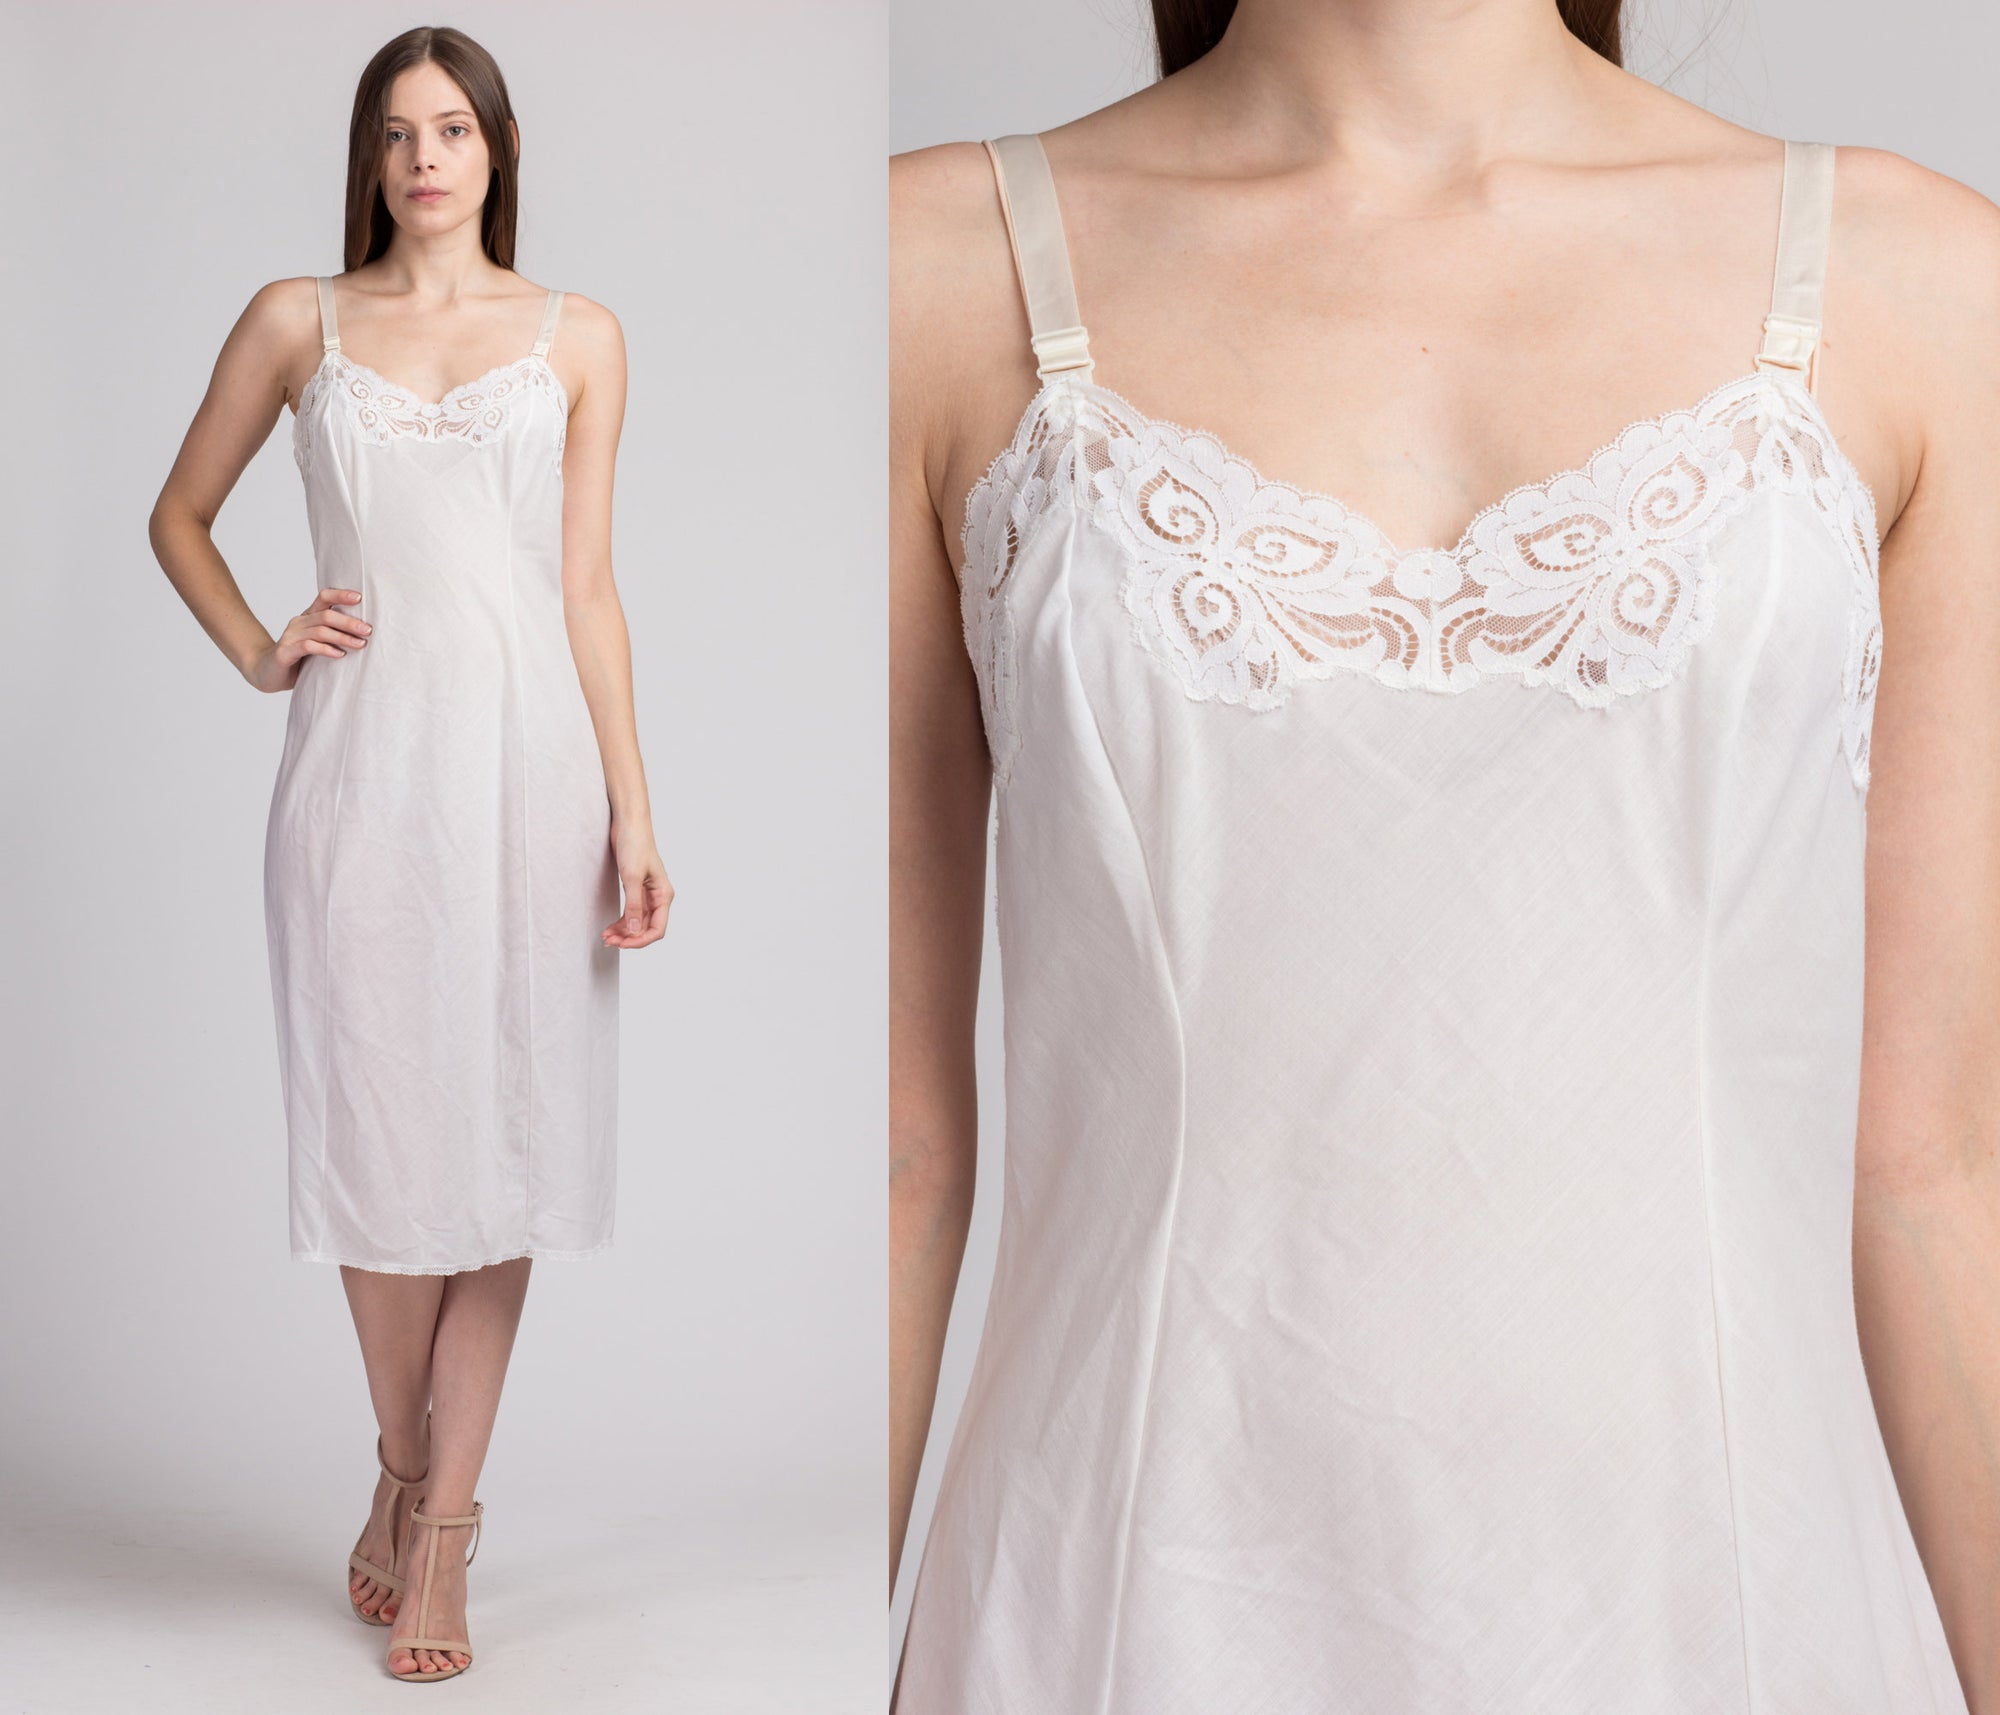 60s Wonder Maid White Midi Slip - Small